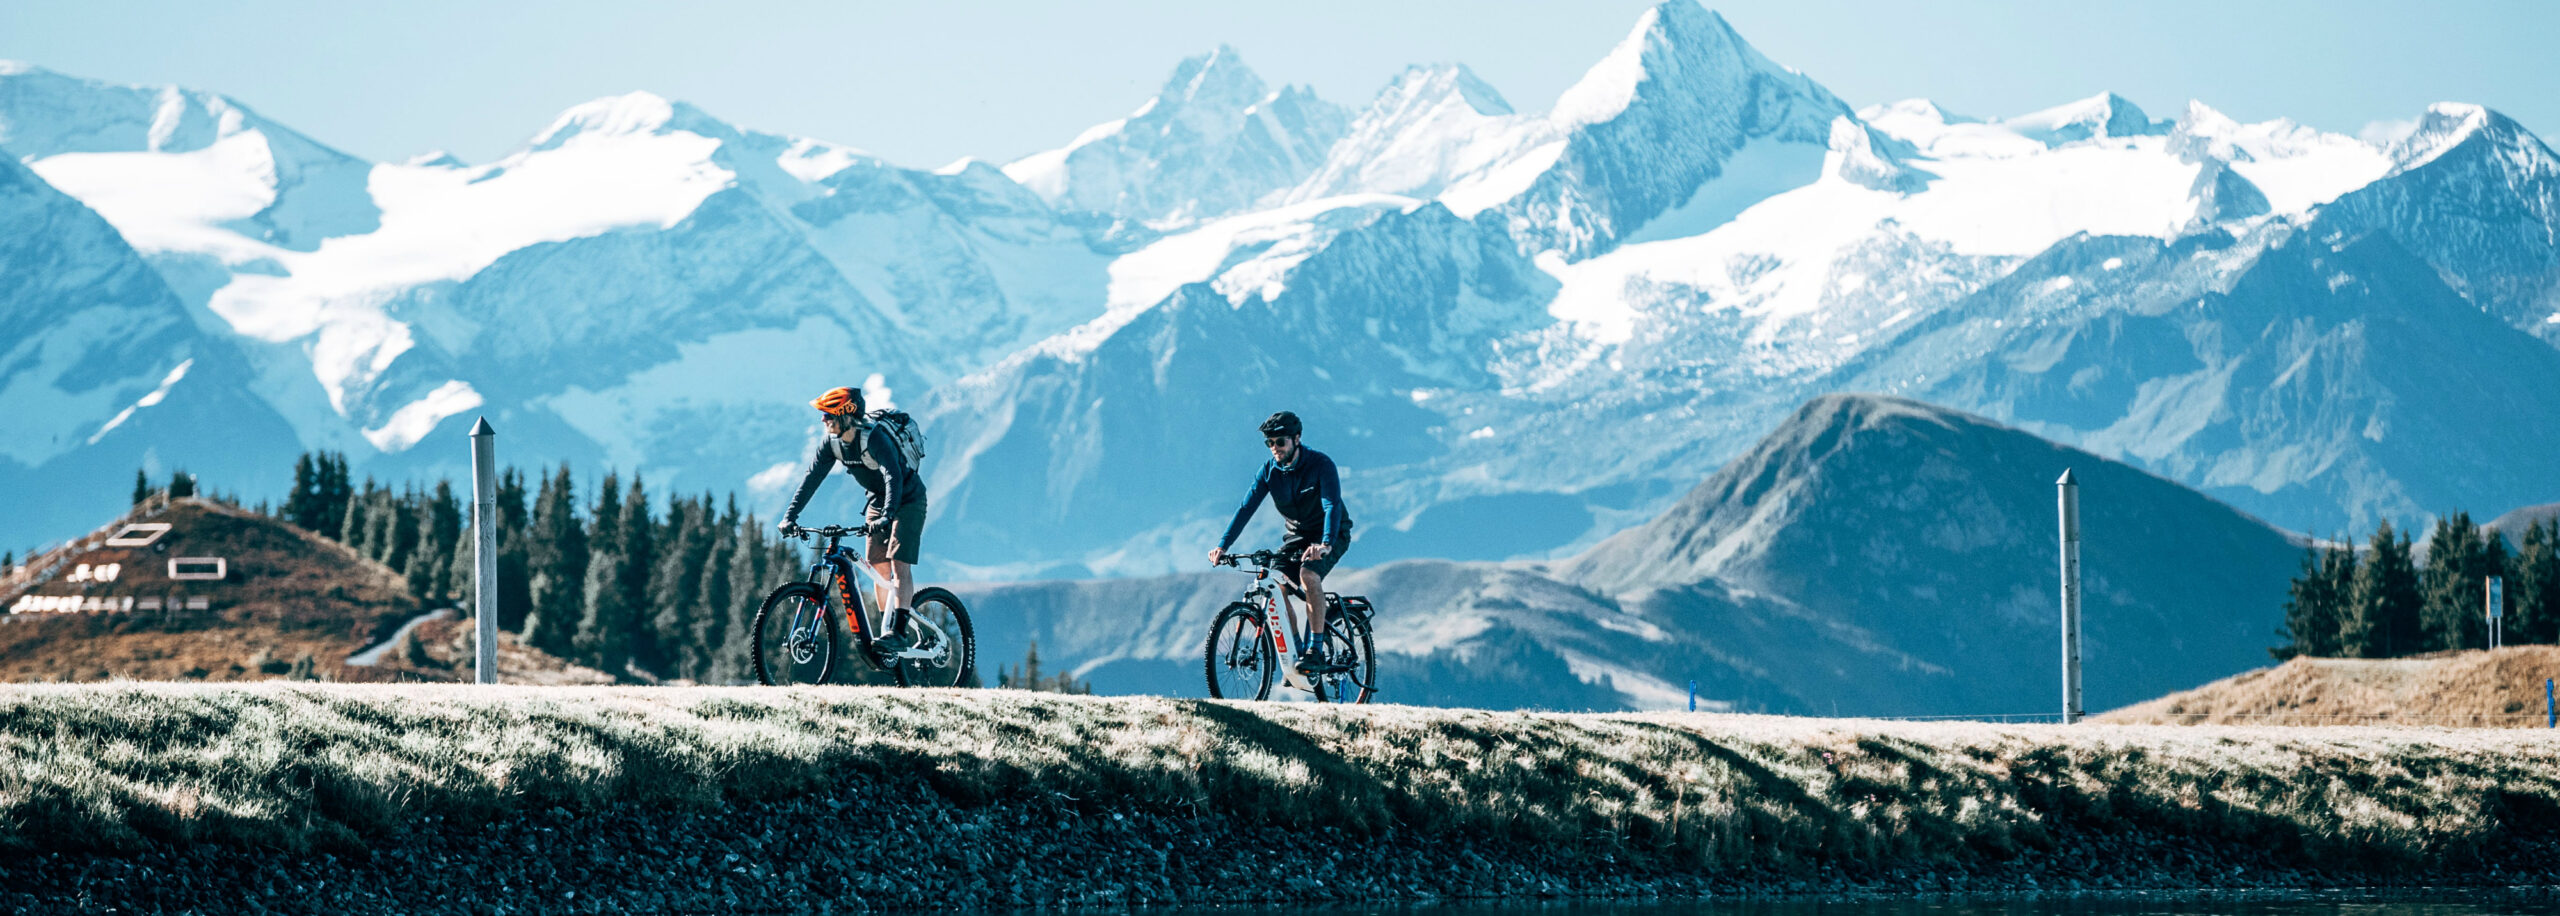 This is the image of two cyclists riding e-bikes with mountains in the background